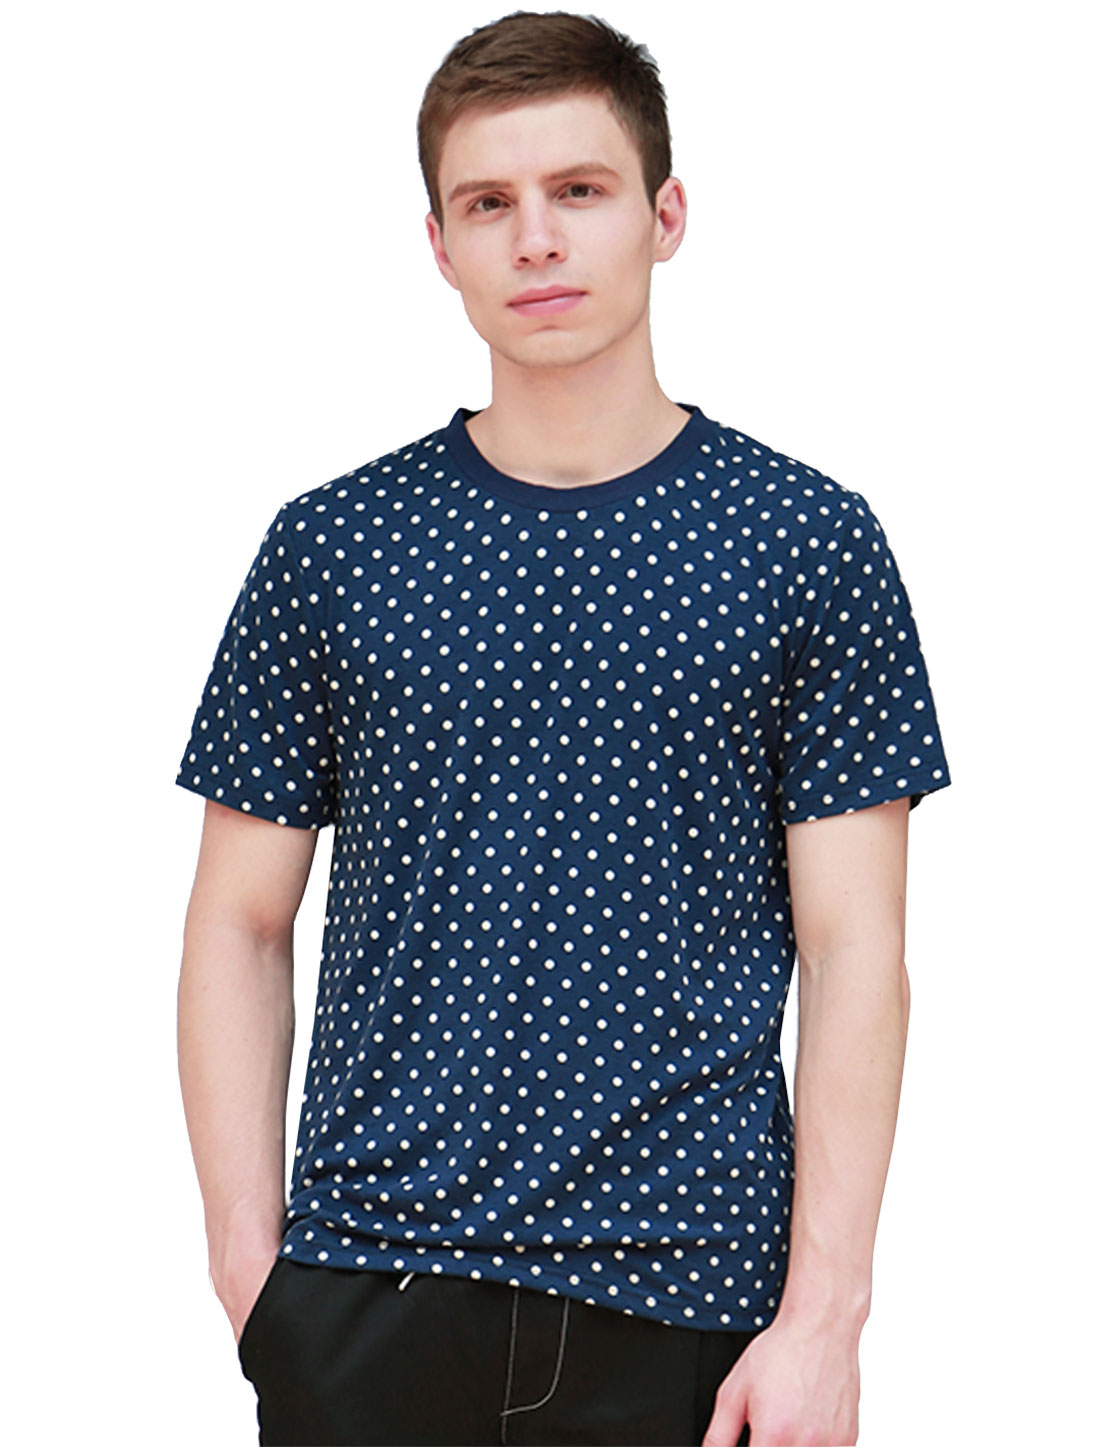 Men Crew Neck Short Sleeves Dotted T-Shirt Blue L